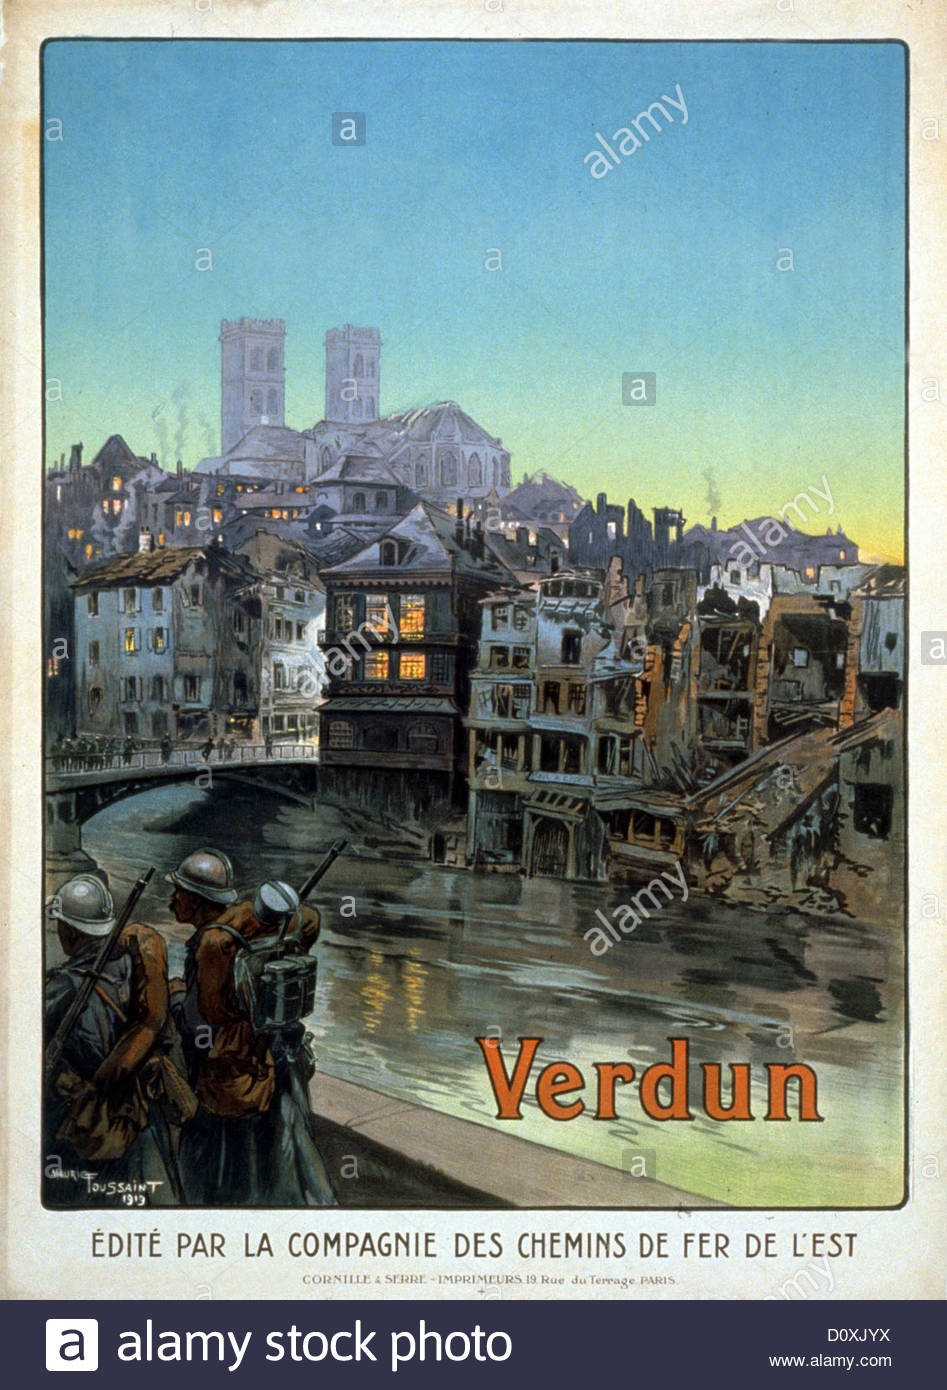 World War I, French, Propaganda, Poster, Soldiers, River, Meuse.